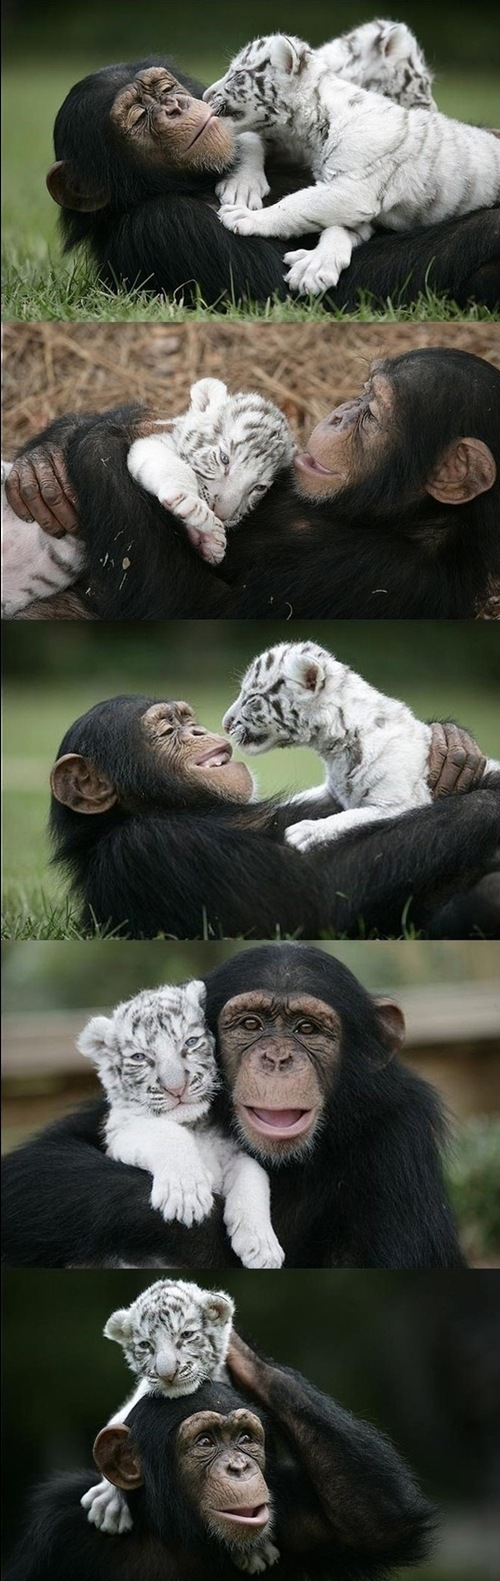 aww, cute, monkey, tiger